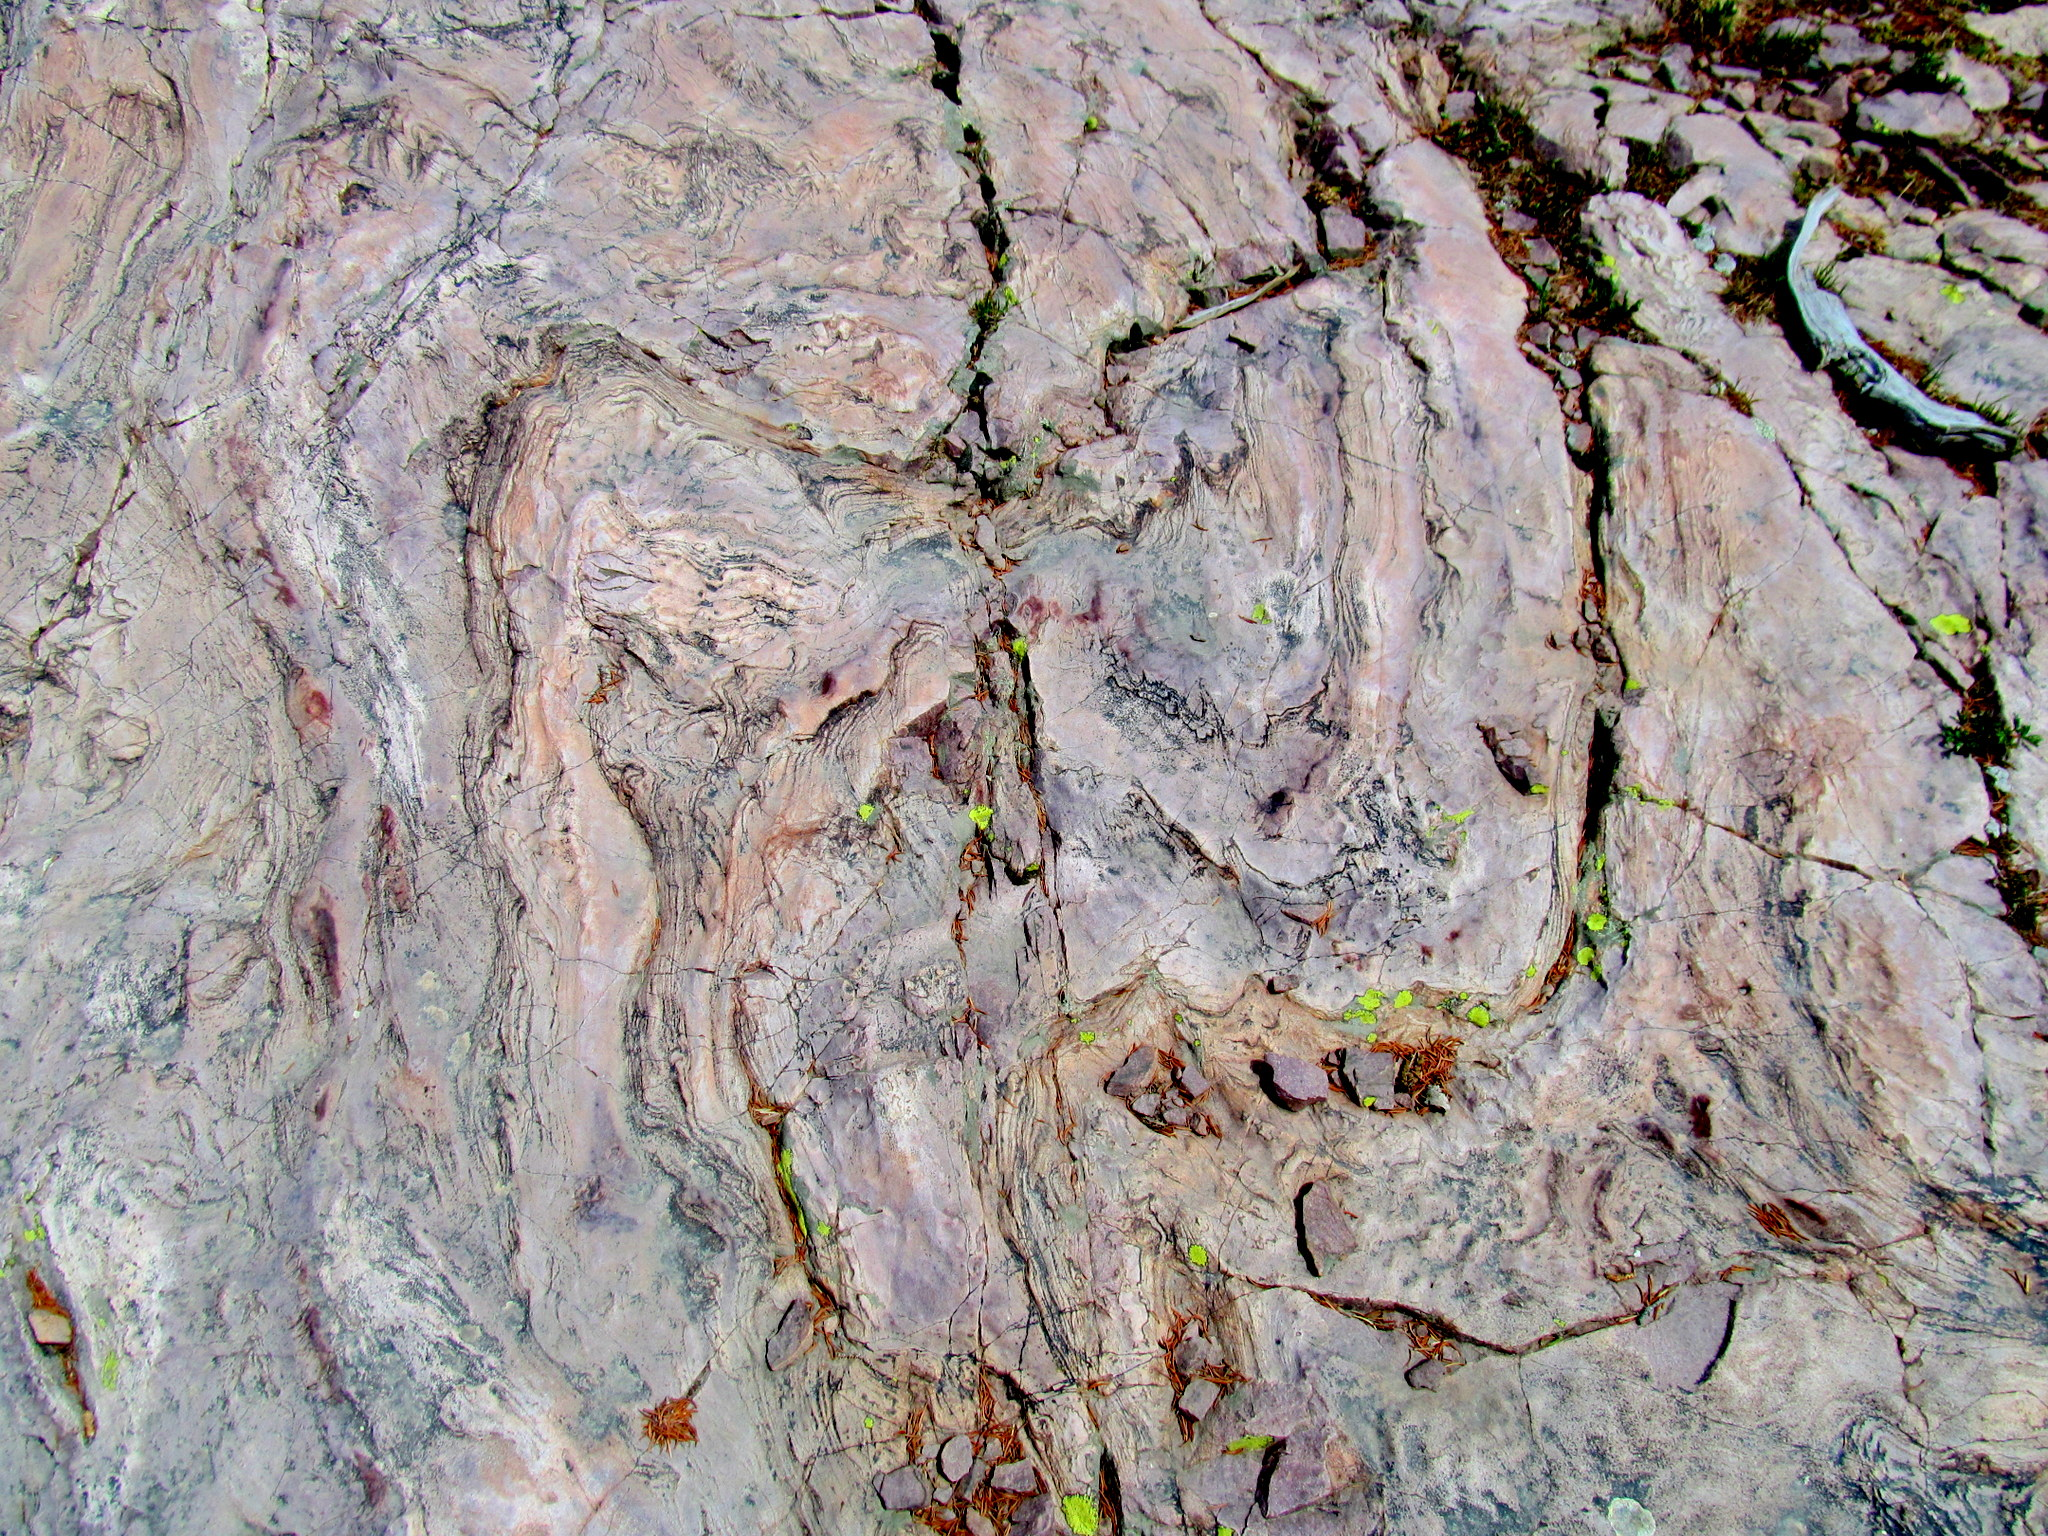 Photo: Patterns in the quartzite